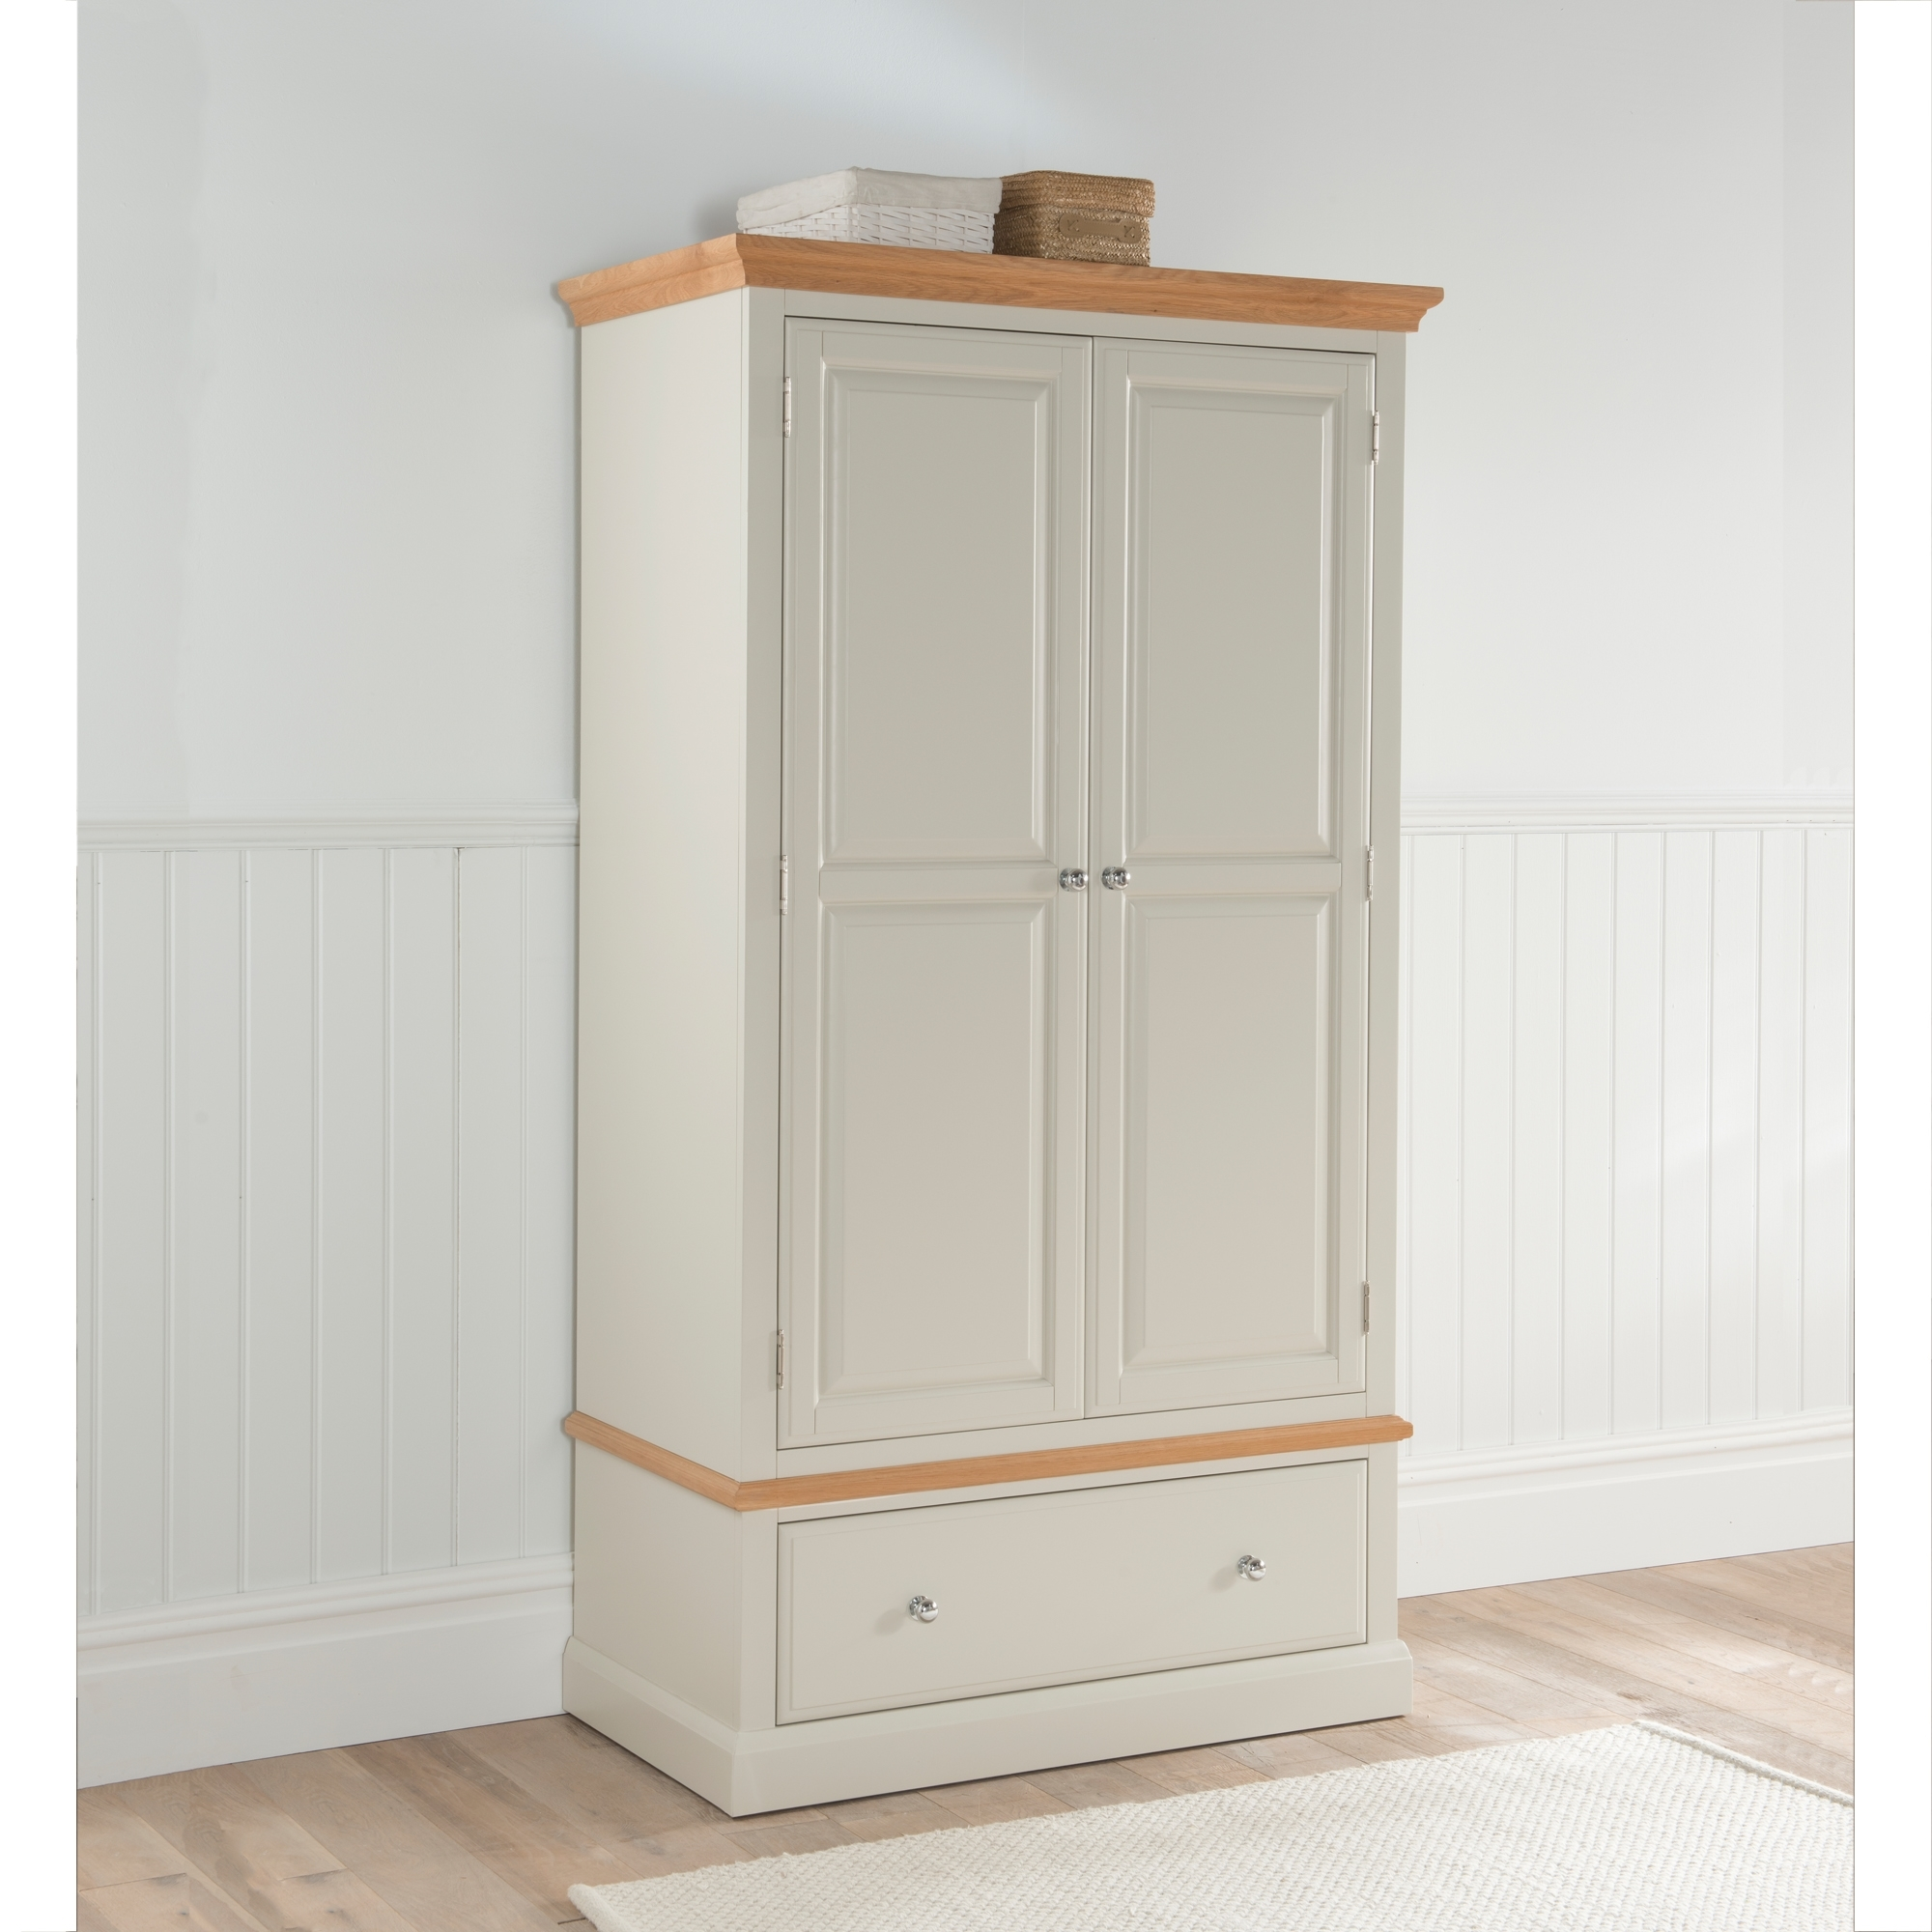 remi shabby chic wardrobe online from homesdirect365. Black Bedroom Furniture Sets. Home Design Ideas